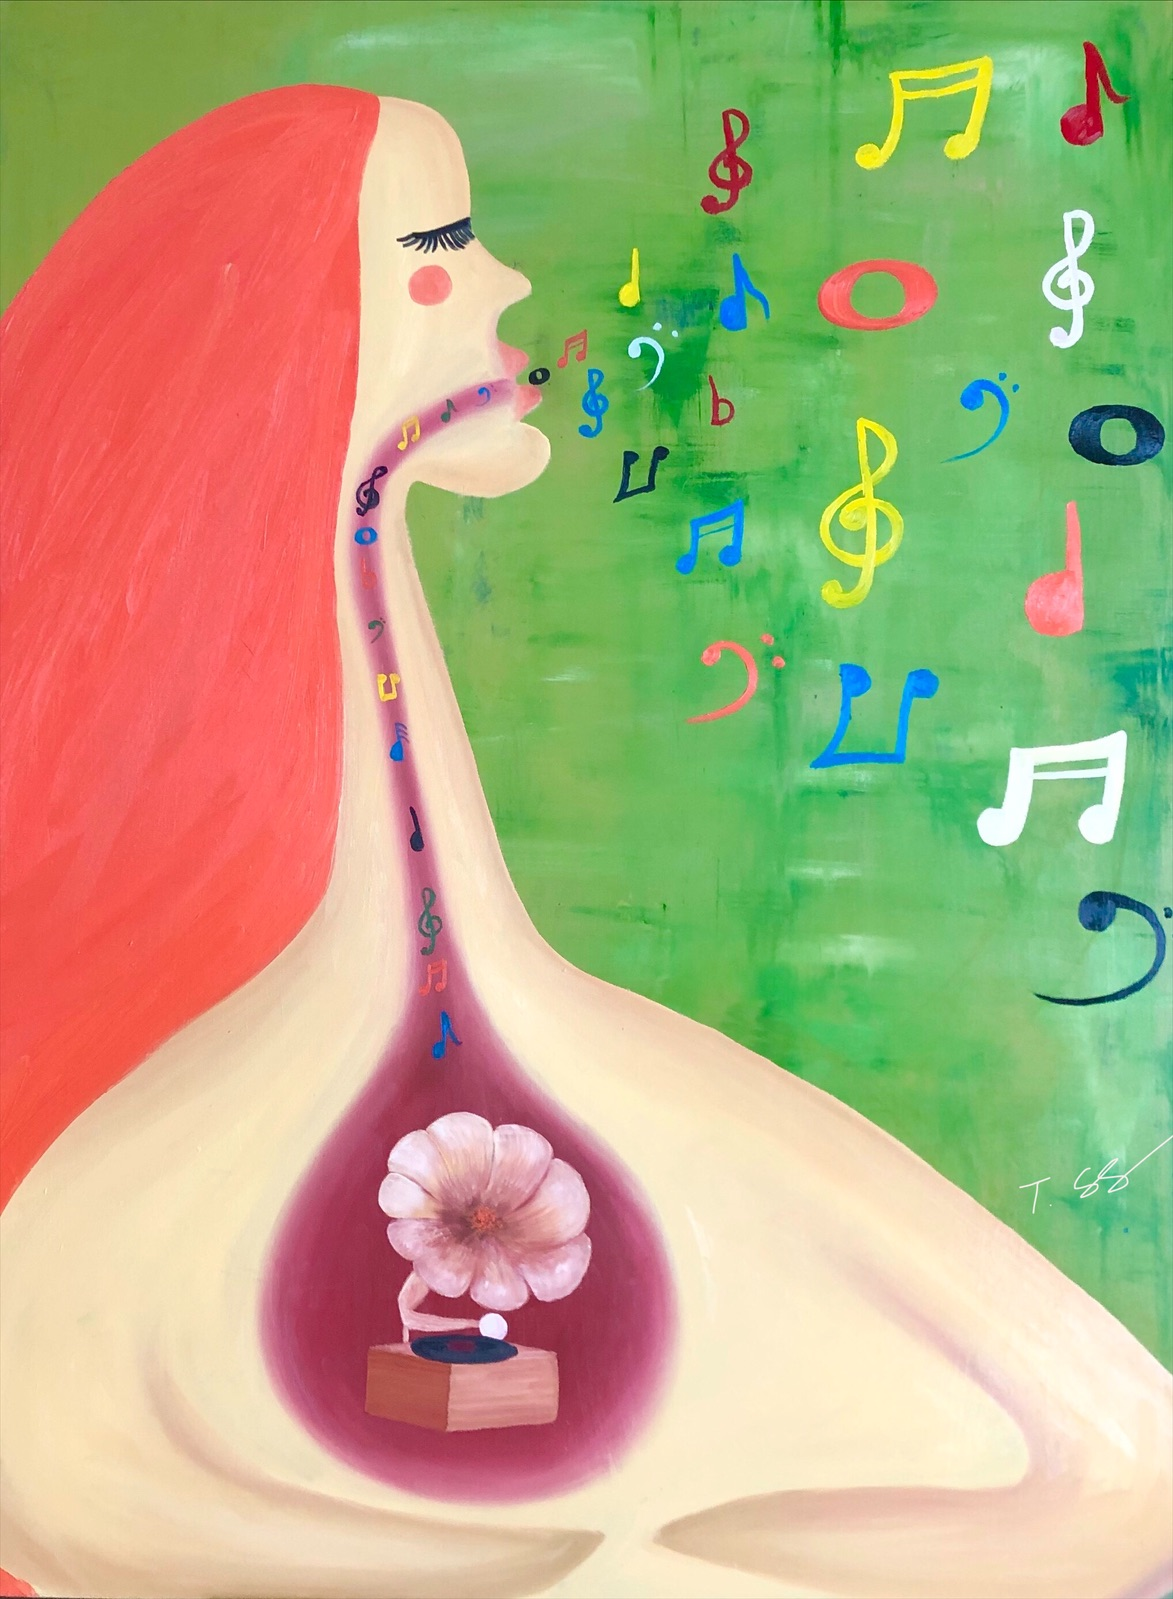 Sing artwork by Solongo Turbayar - art listed for sale on Artplode